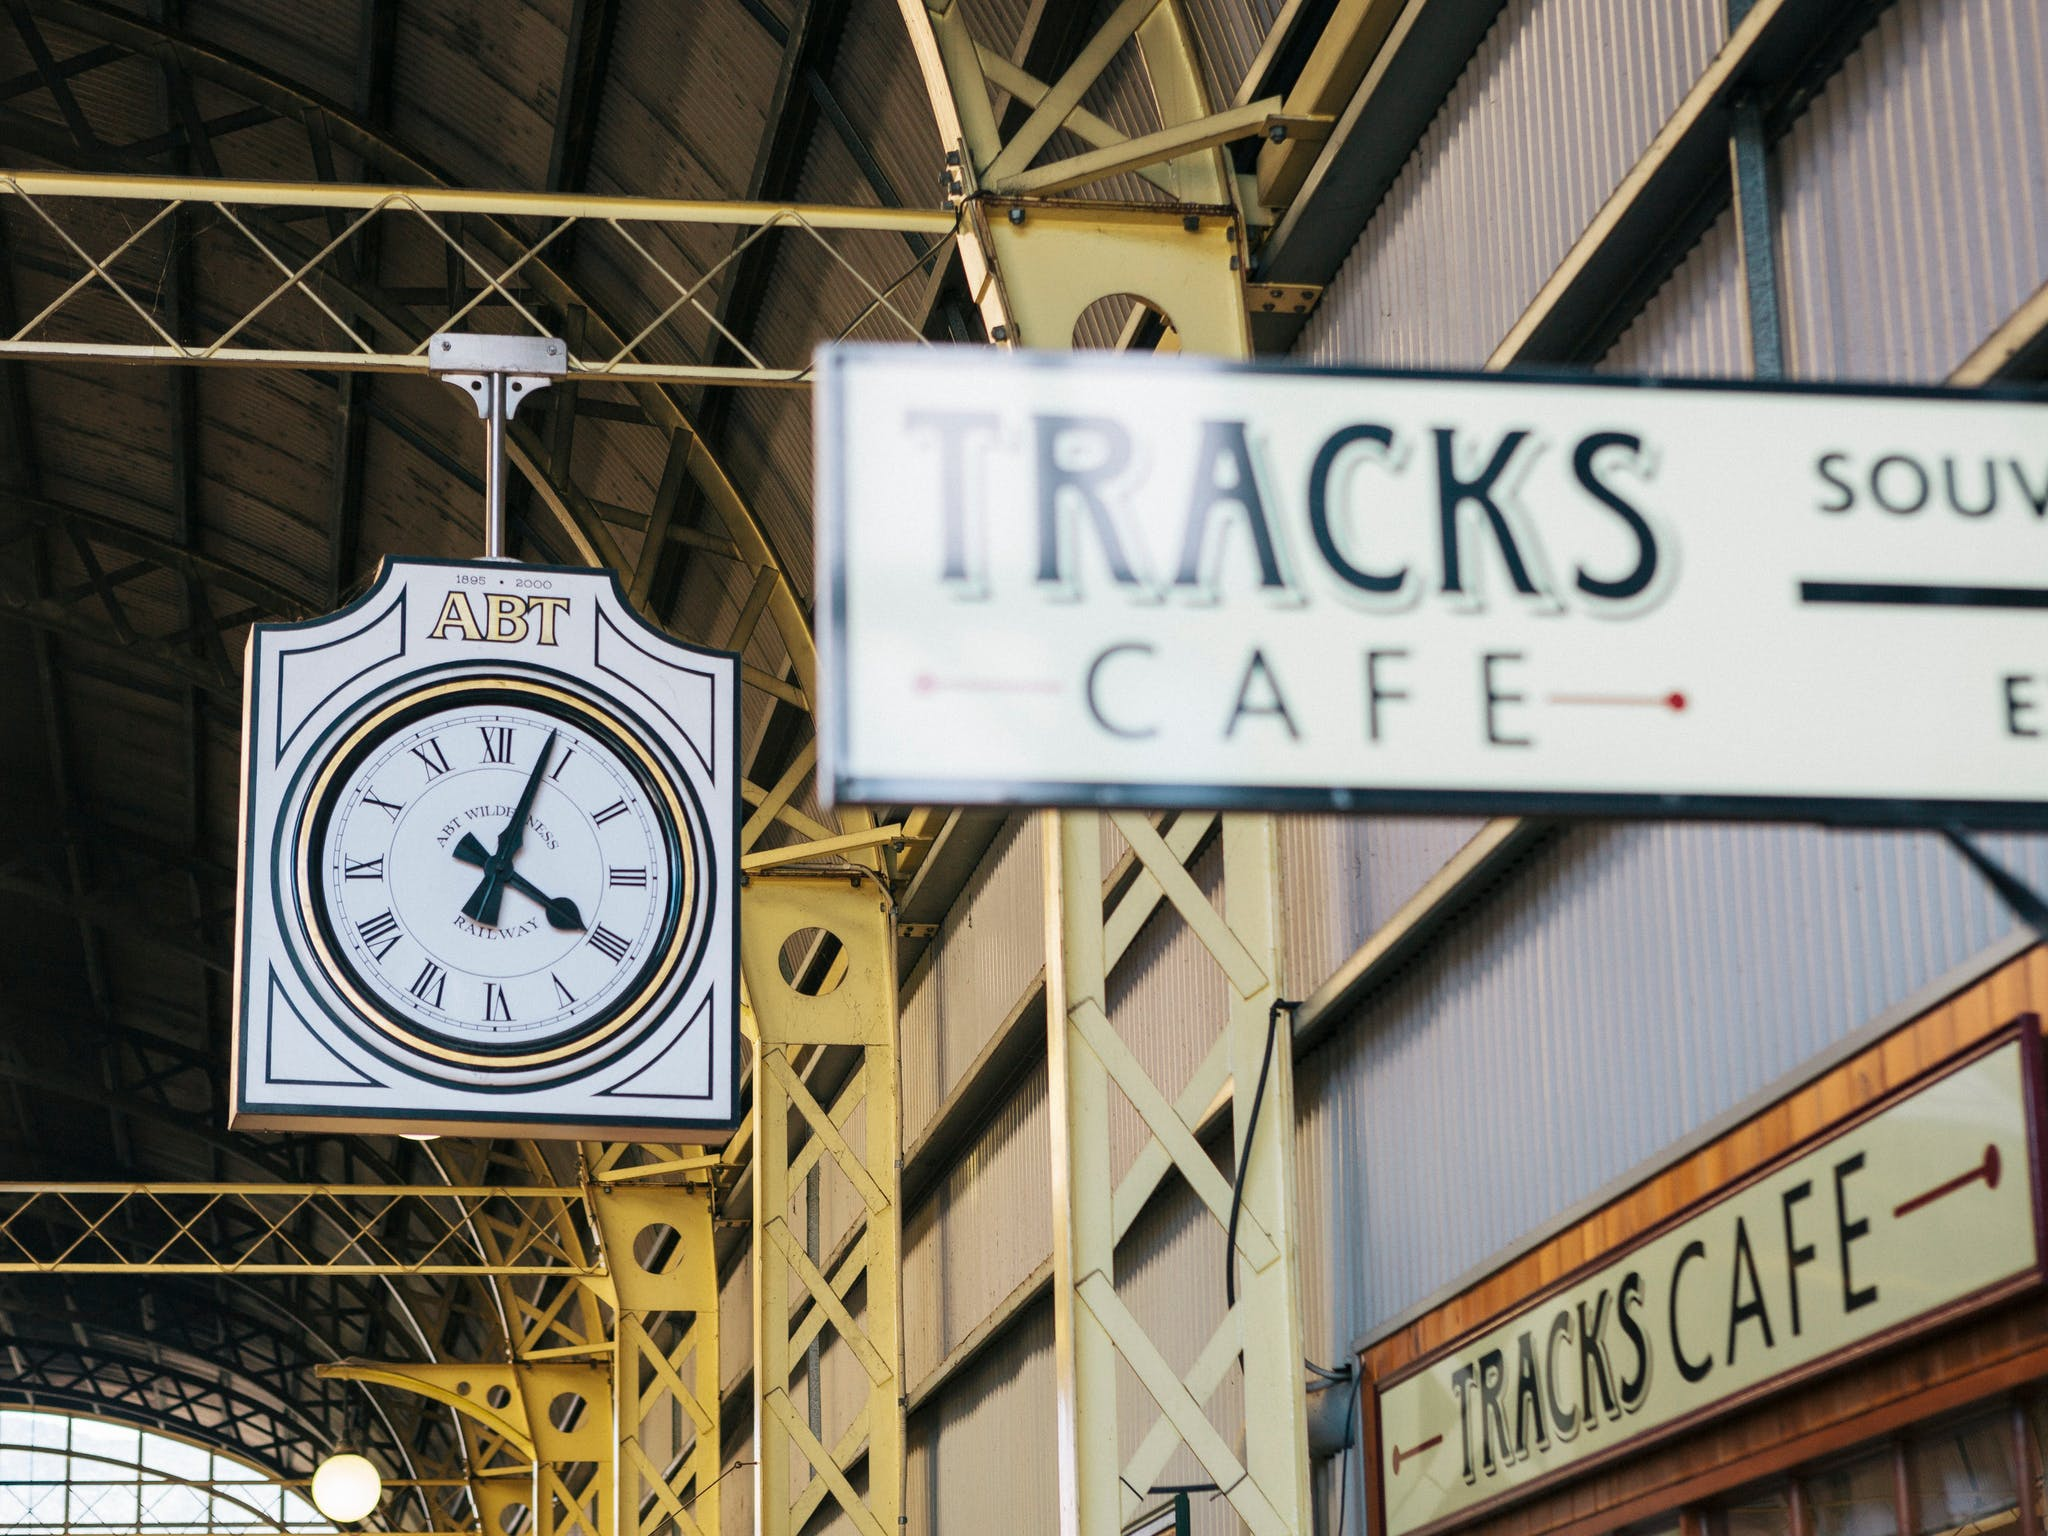 Tracks Cafe at Queenstown Station offers great coffee , snacks and light meals